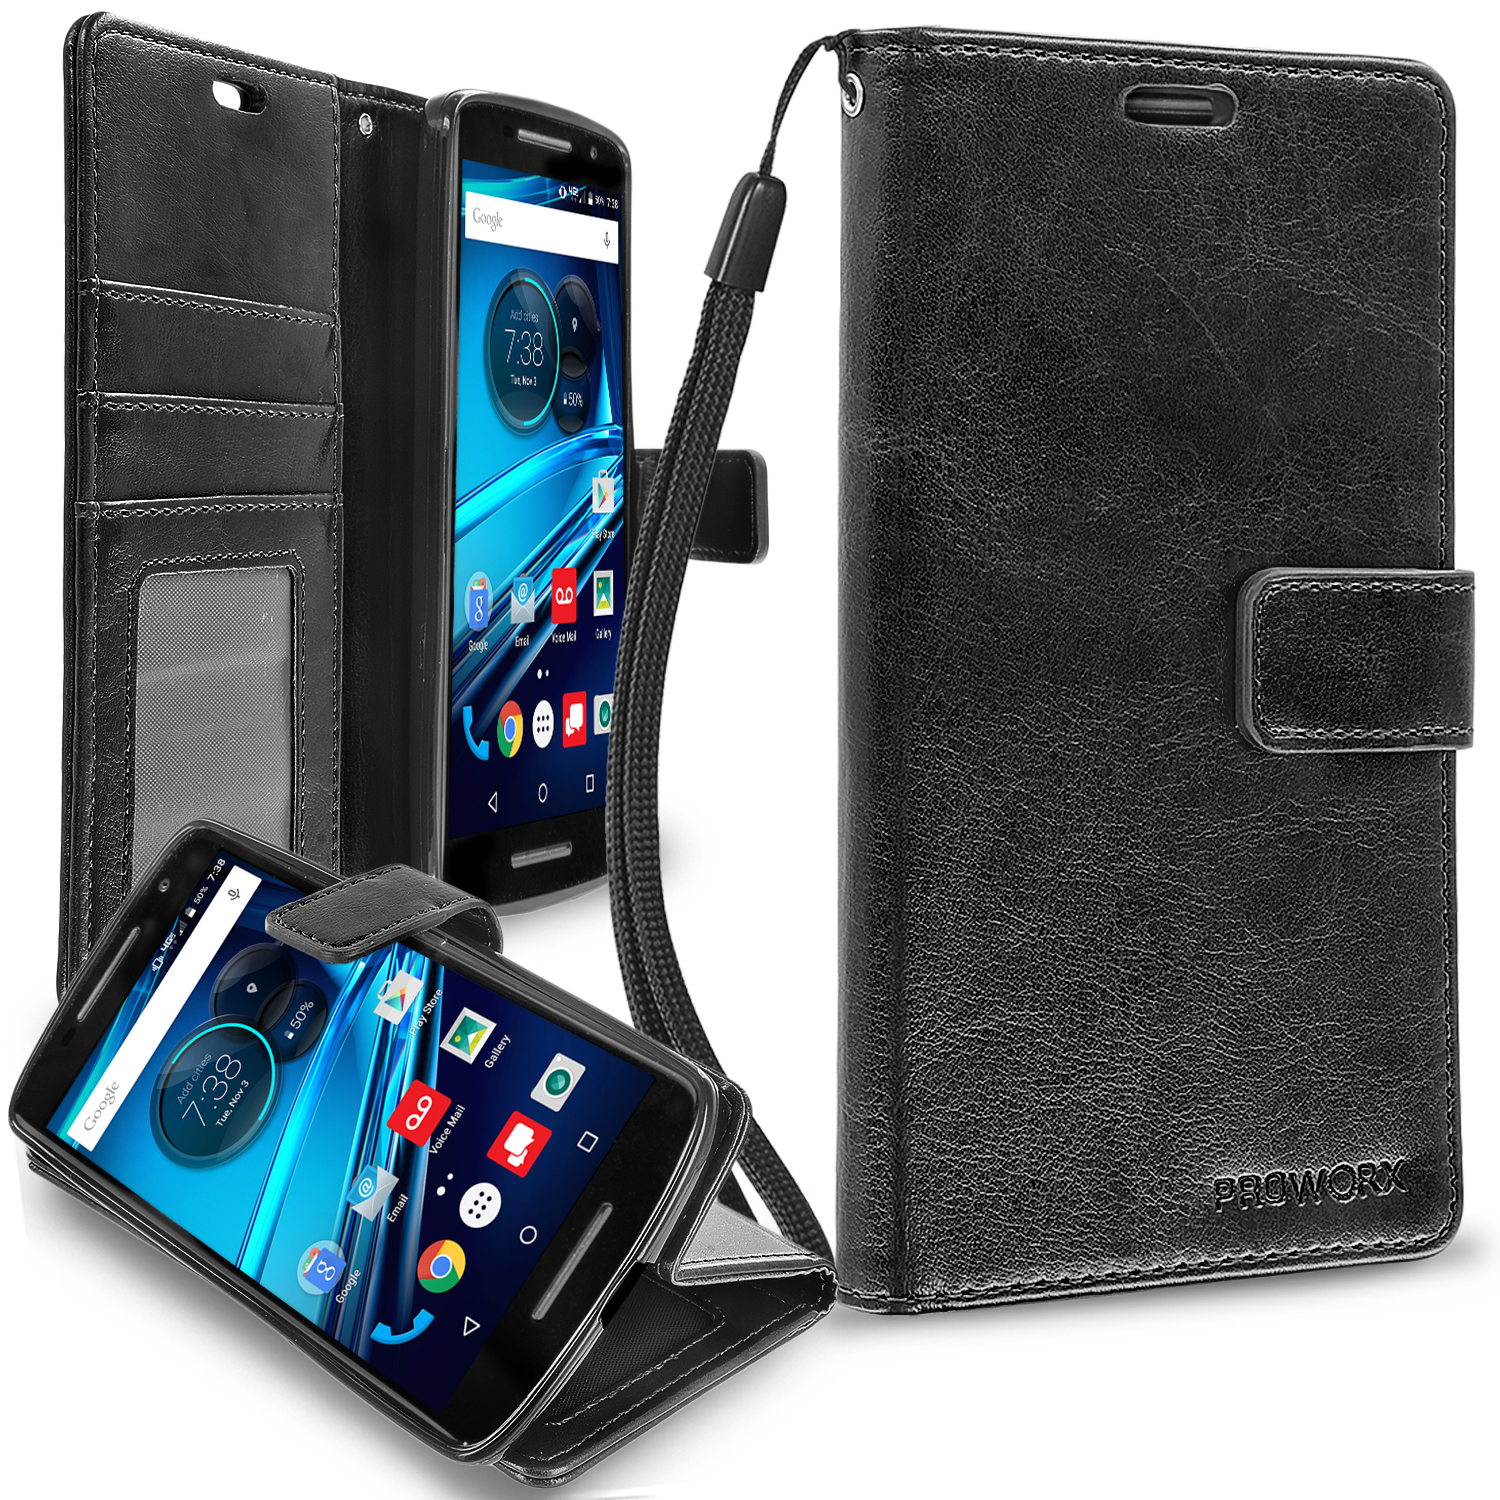 Motorola Droid Maxx 2 XT1565 Black ProWorx Wallet Case Luxury PU Leather Case Cover With Card Slots & Stand